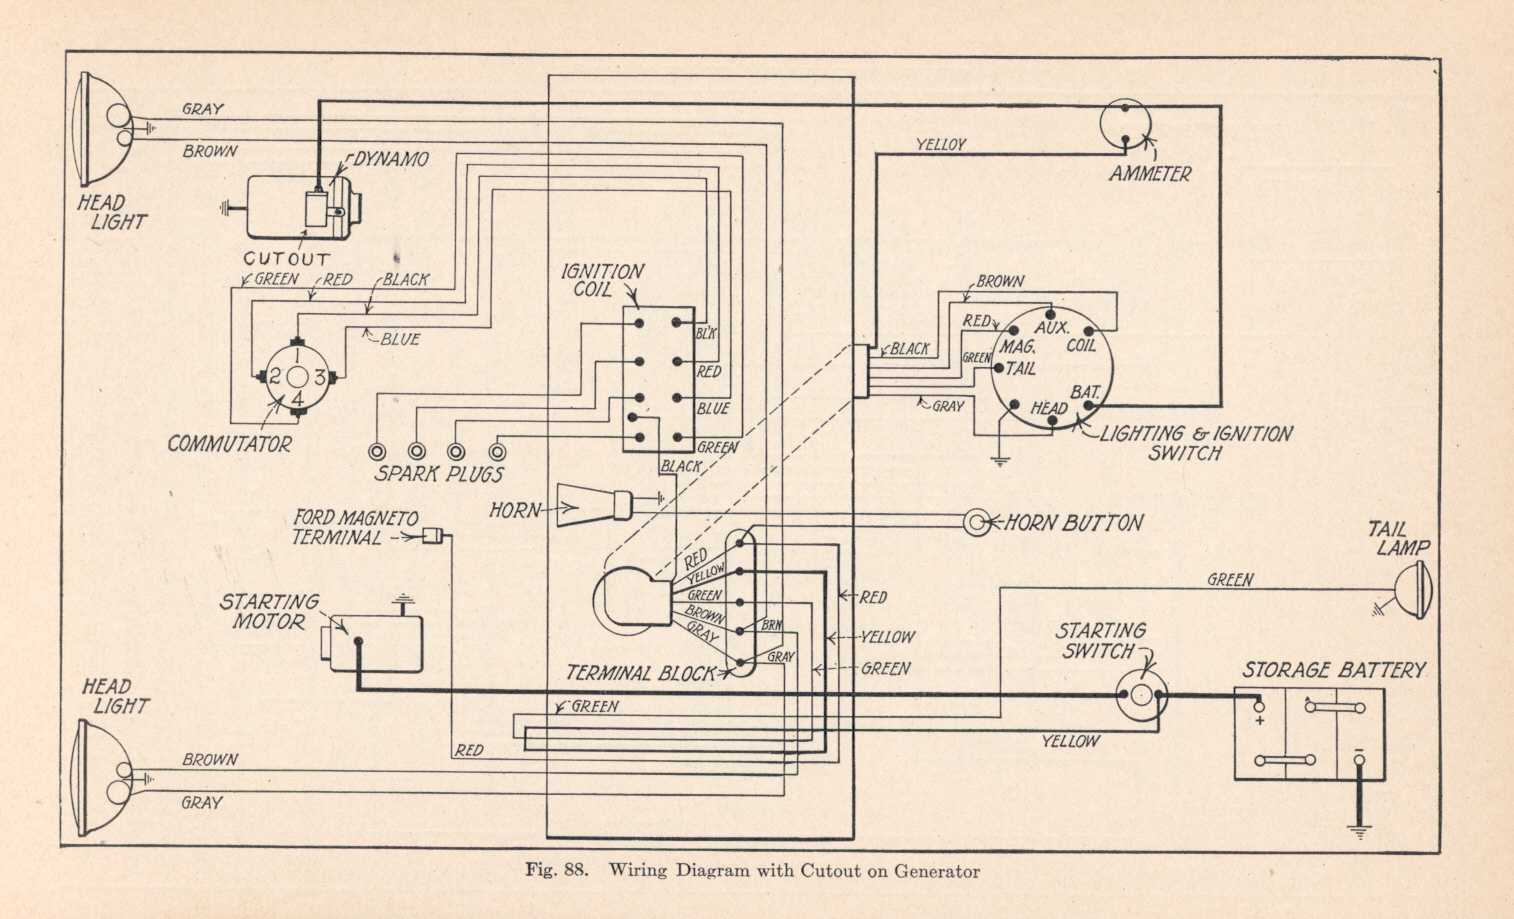 80032 model t wiring diagram model t ford wiring diagrams \u2022 free wiring 1915 model t ford wiring diagram at gsmx.co